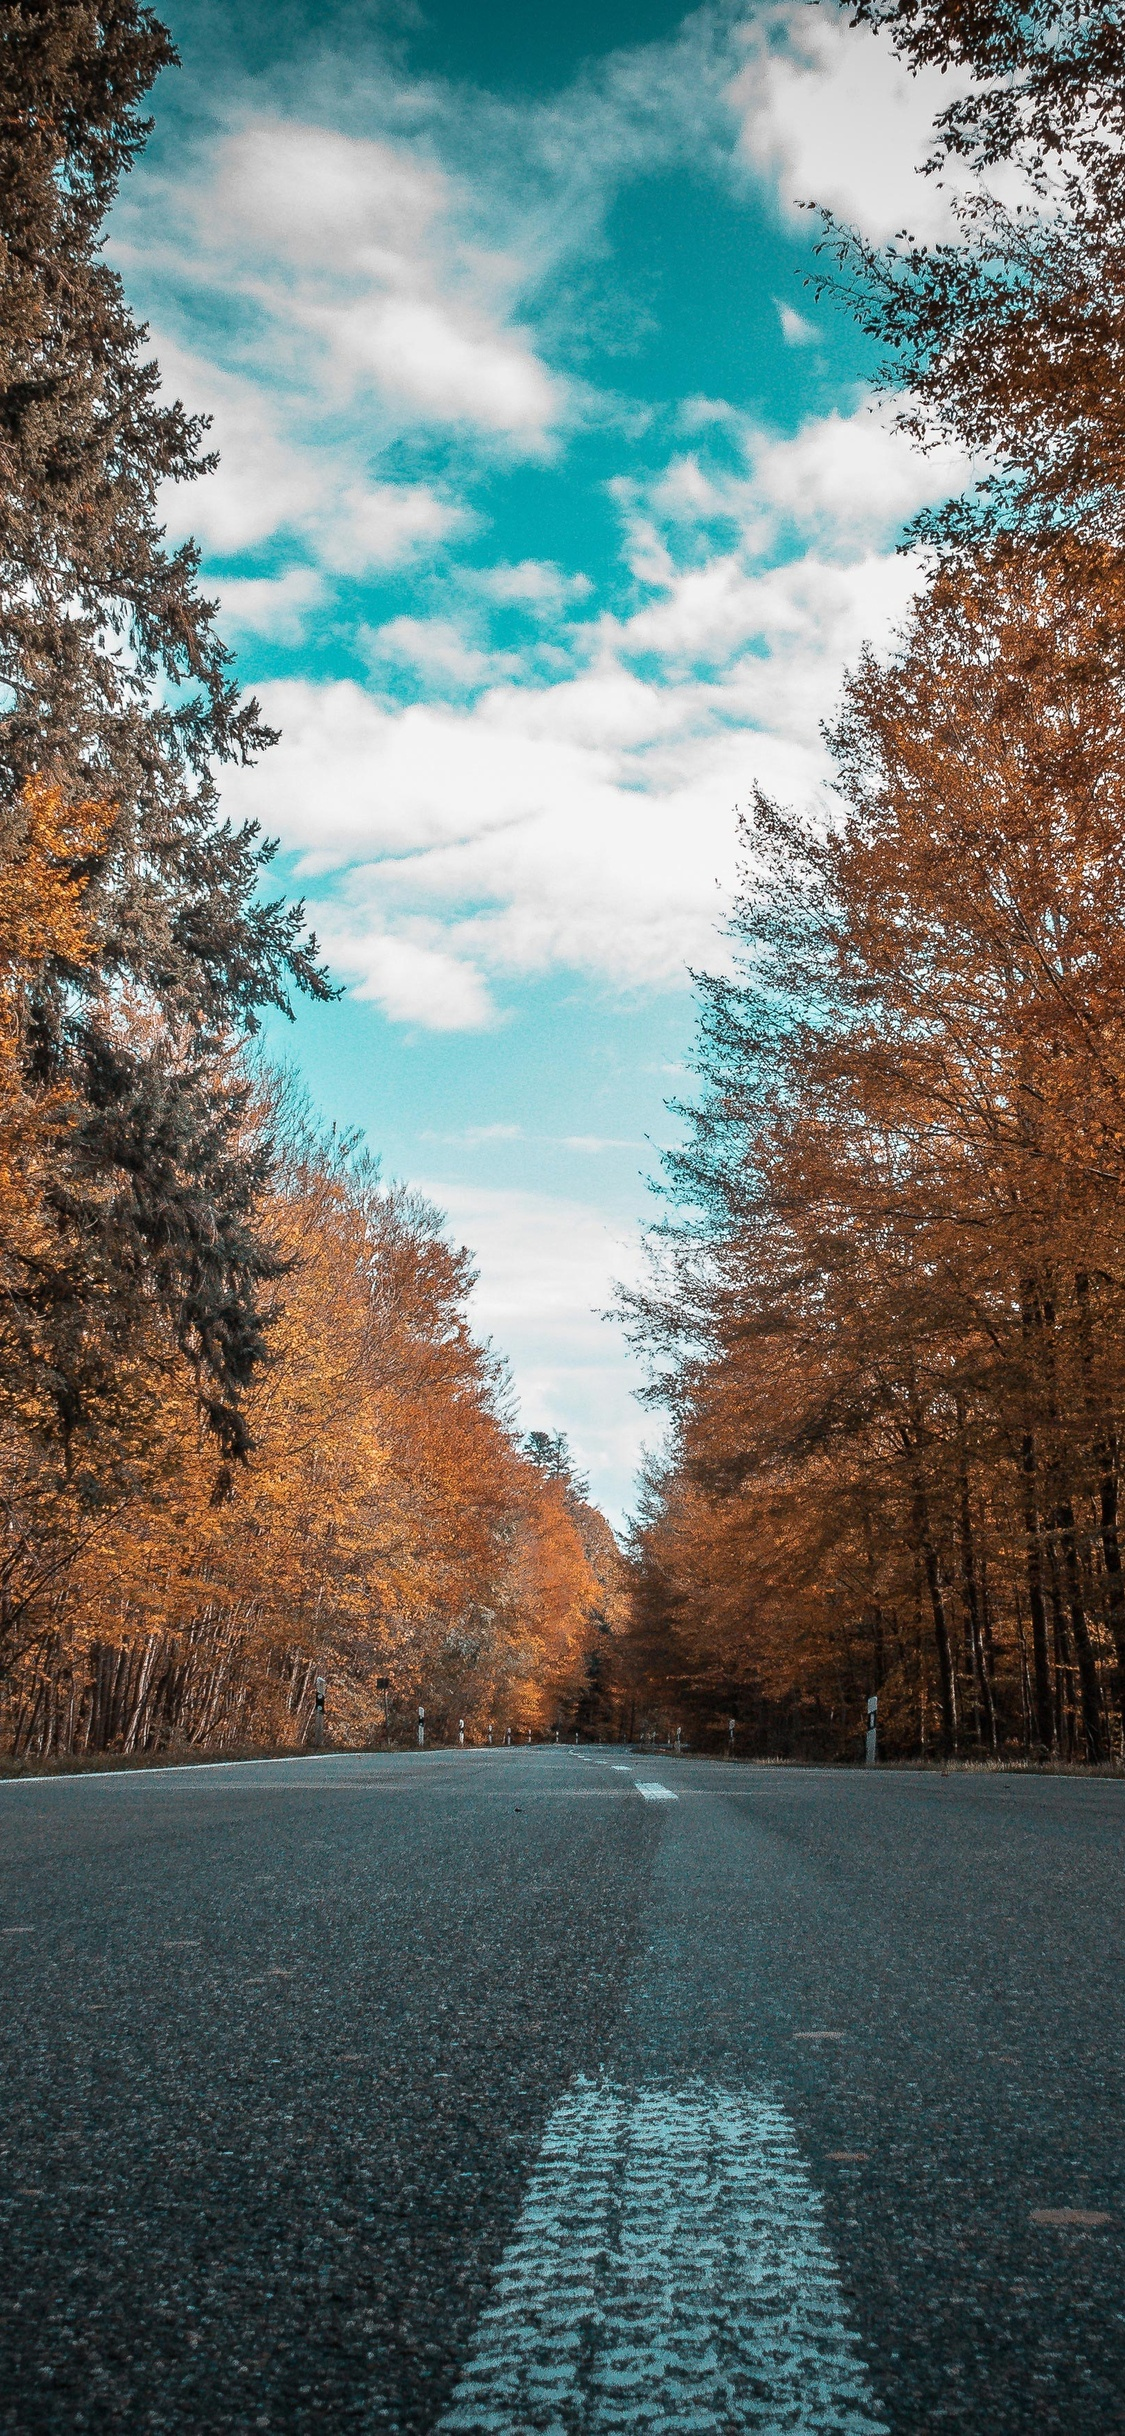 1125x2436 Alone Road Forest Autumn Golden Trees Ultra 4k Iphone Xs